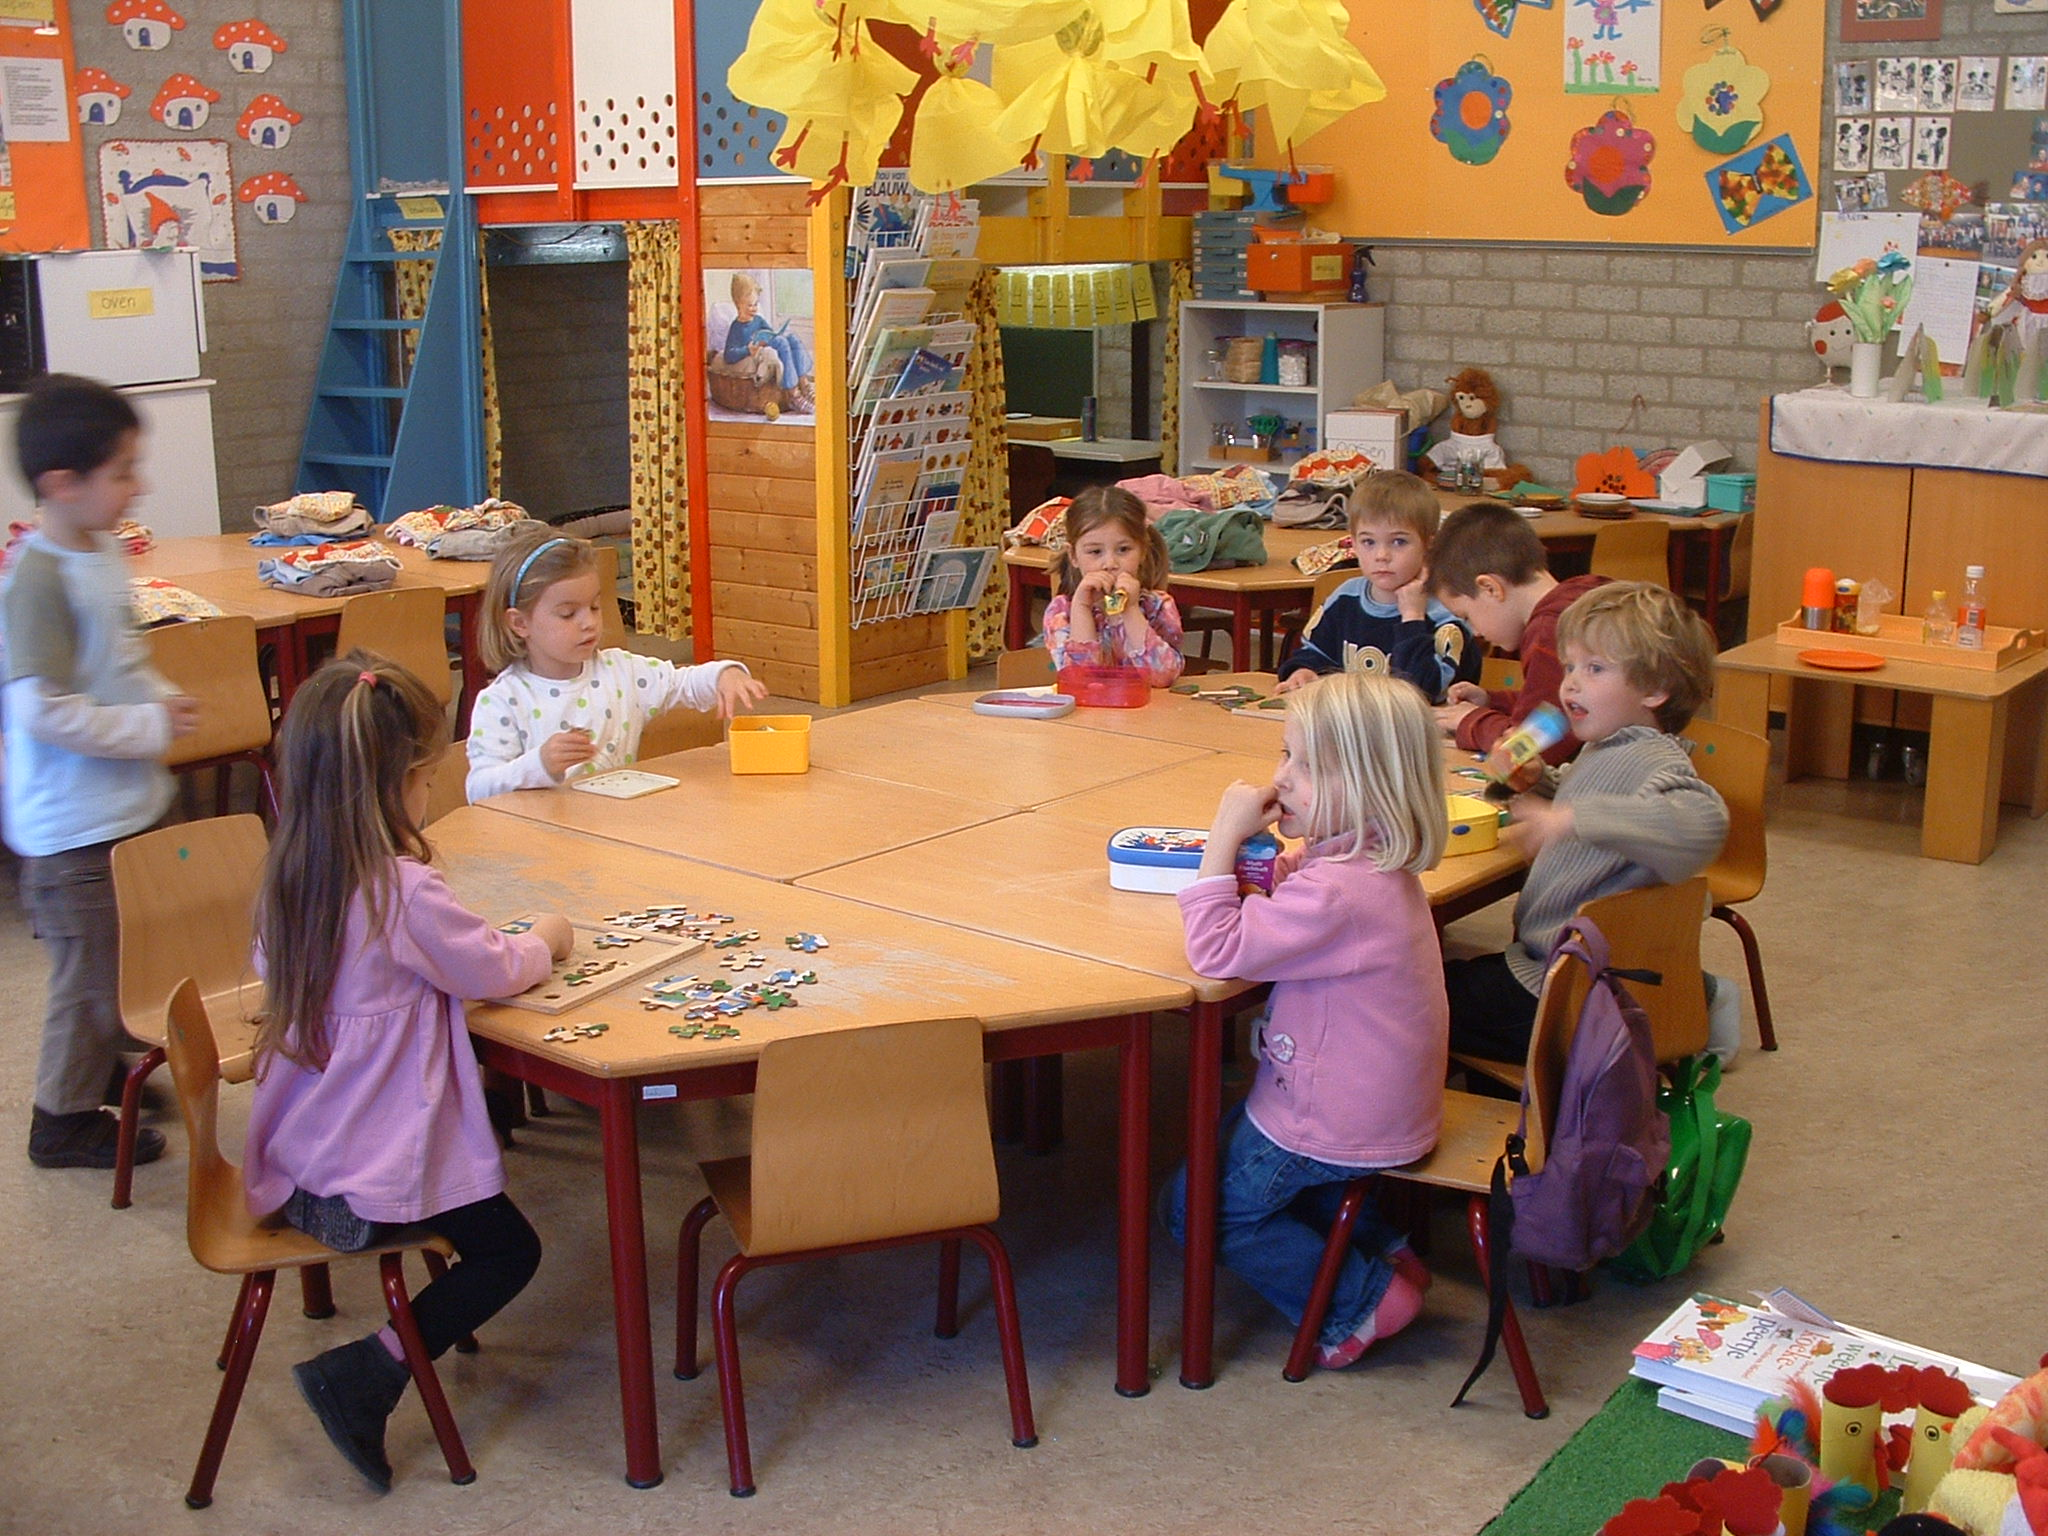 Is Your Child Registered for Nursery School in Dubai? | Expat Echo ...